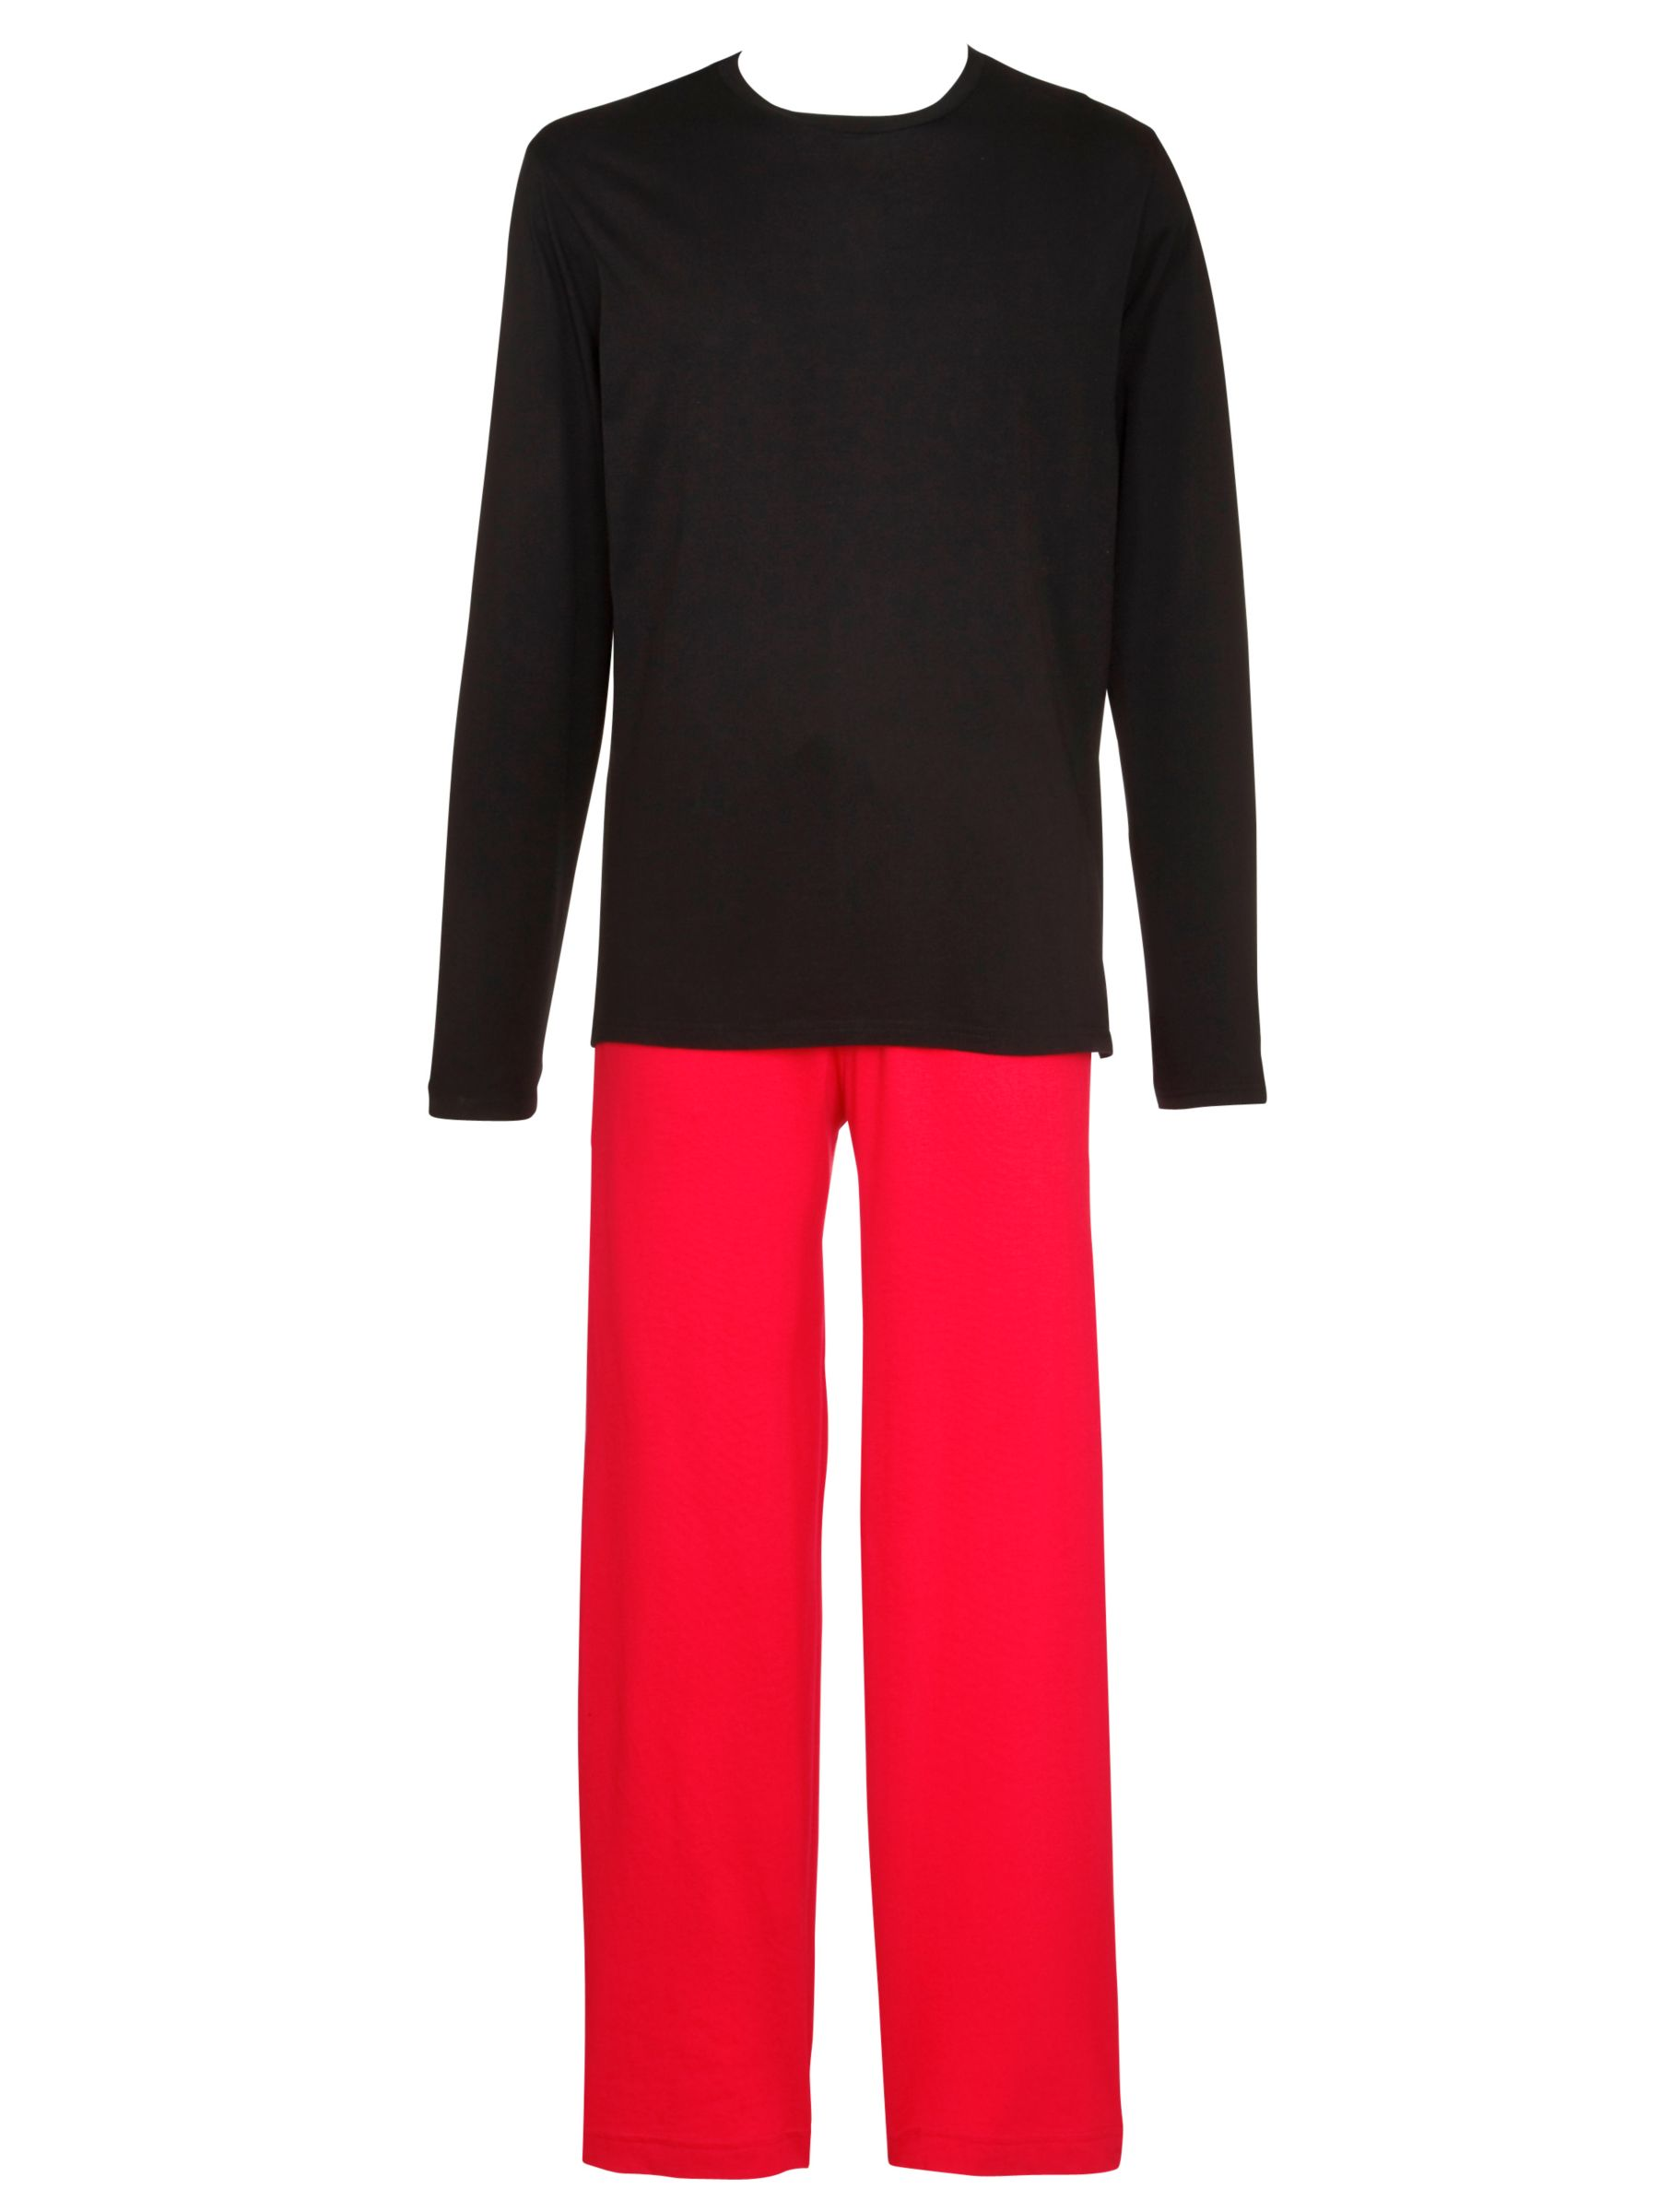 Polo Ralph Lauren Cotton Loungewear Set, Black/Red